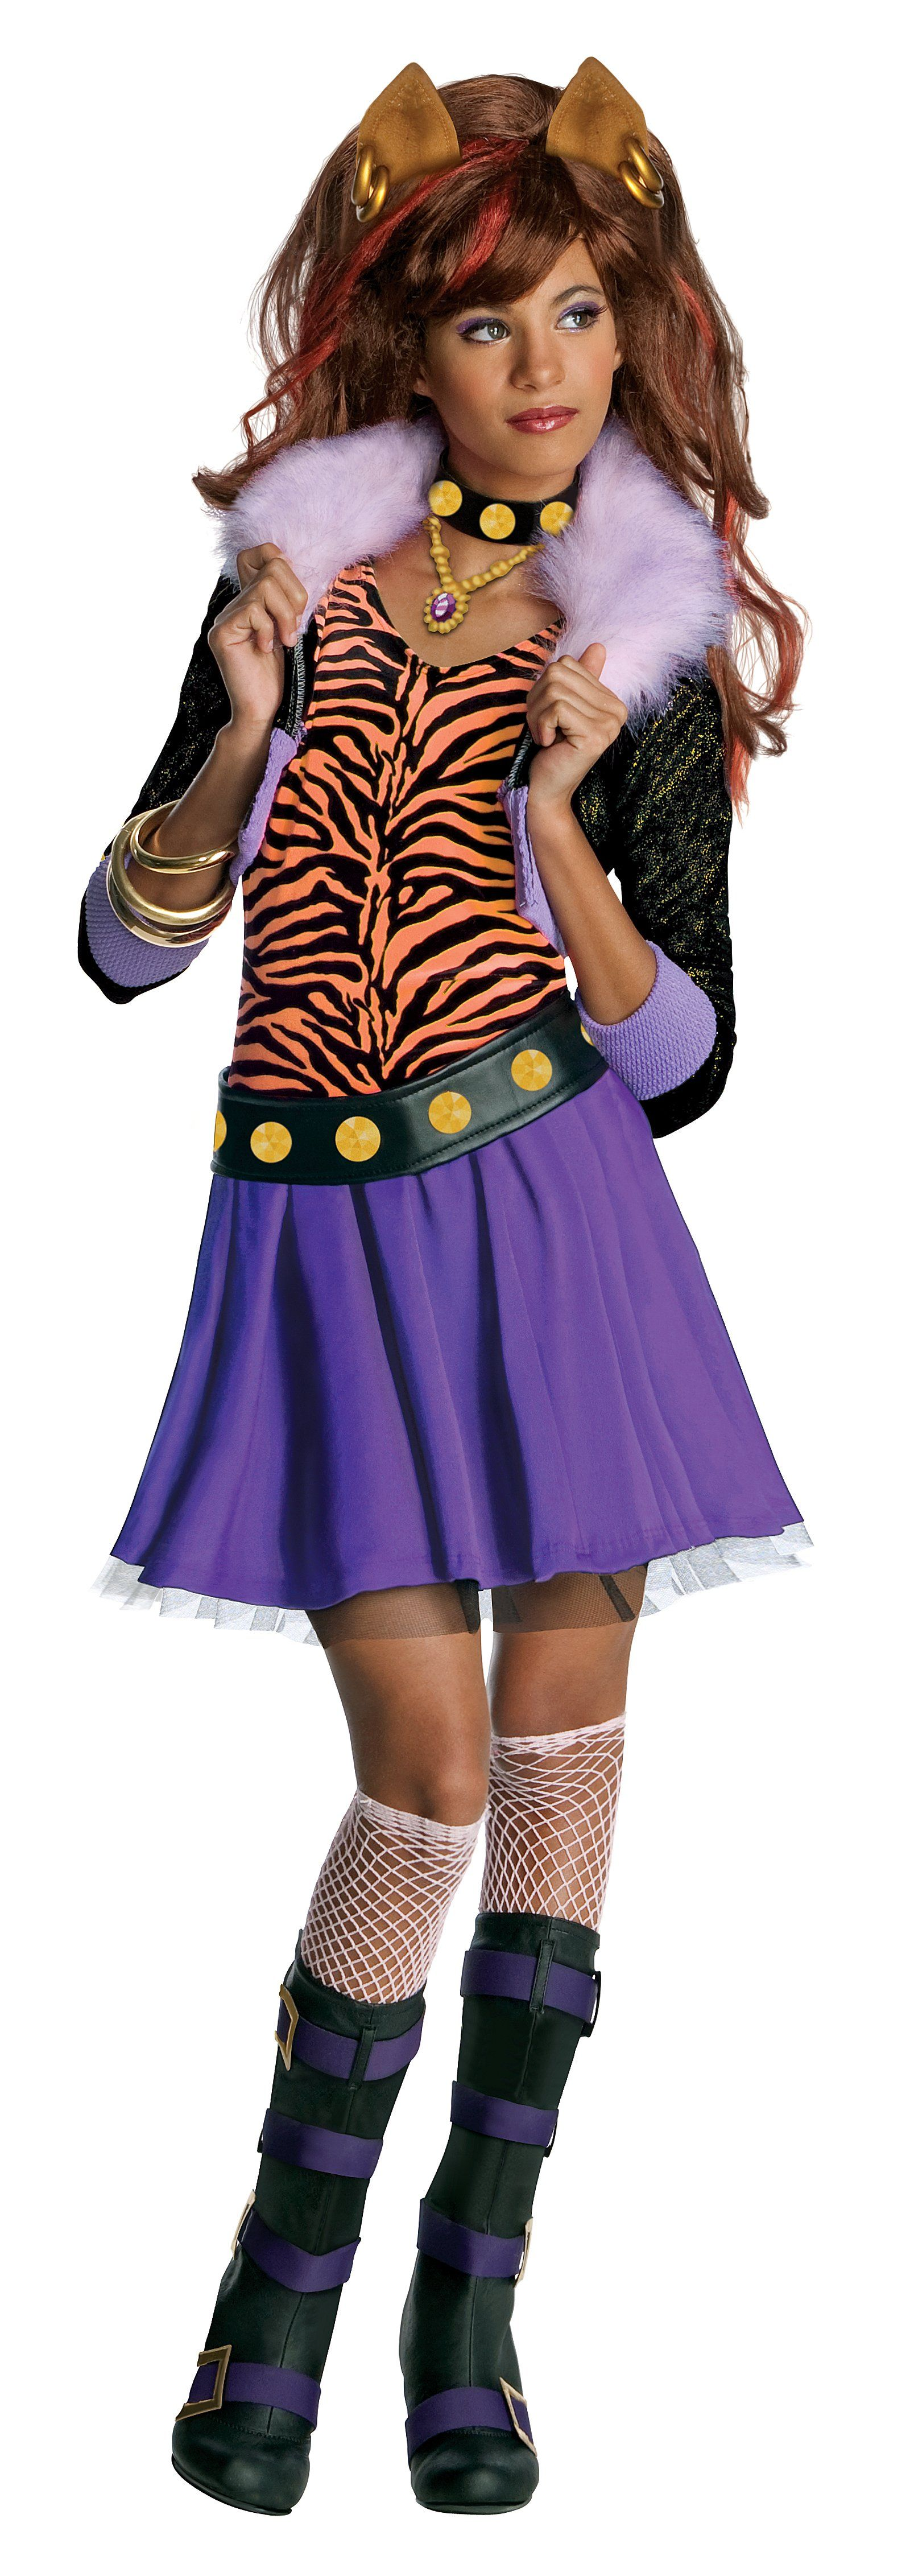 monster high clawdeen wolf child costume - Wolf Halloween Costume Kids